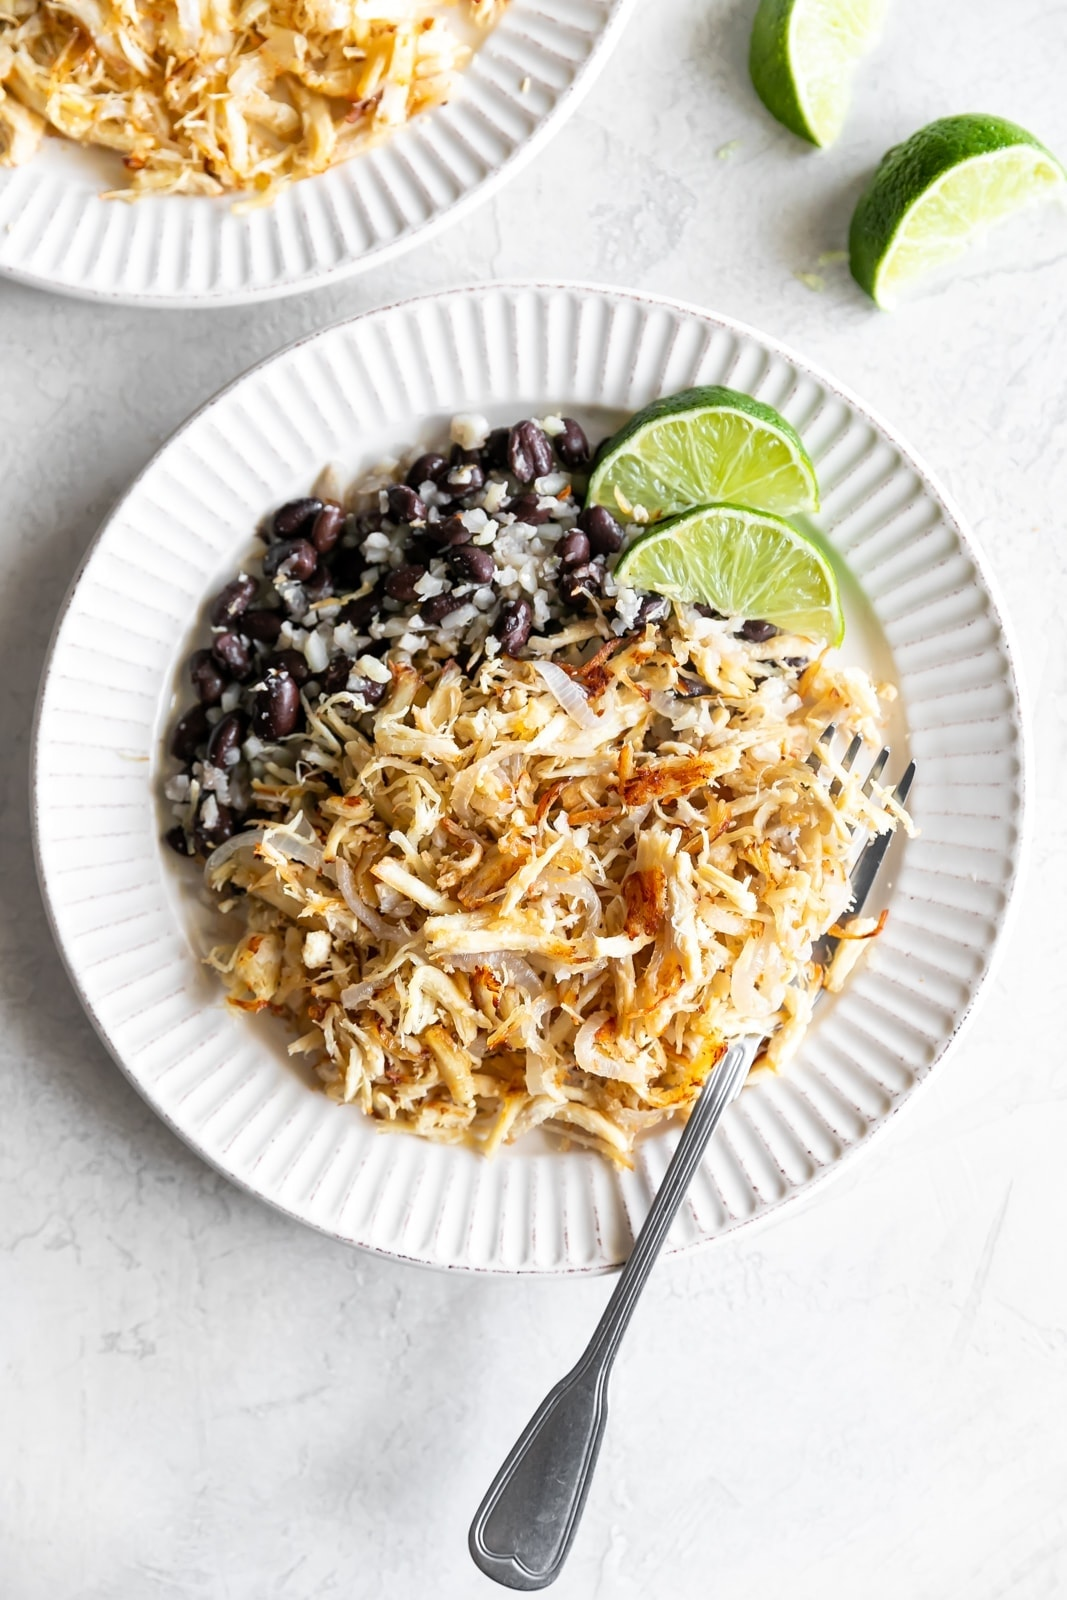 Easy-to-make cuban crispy shredded chicken with homemade mojo marinate, pan-fried with sautéed onions. Great use for leftover chicken!